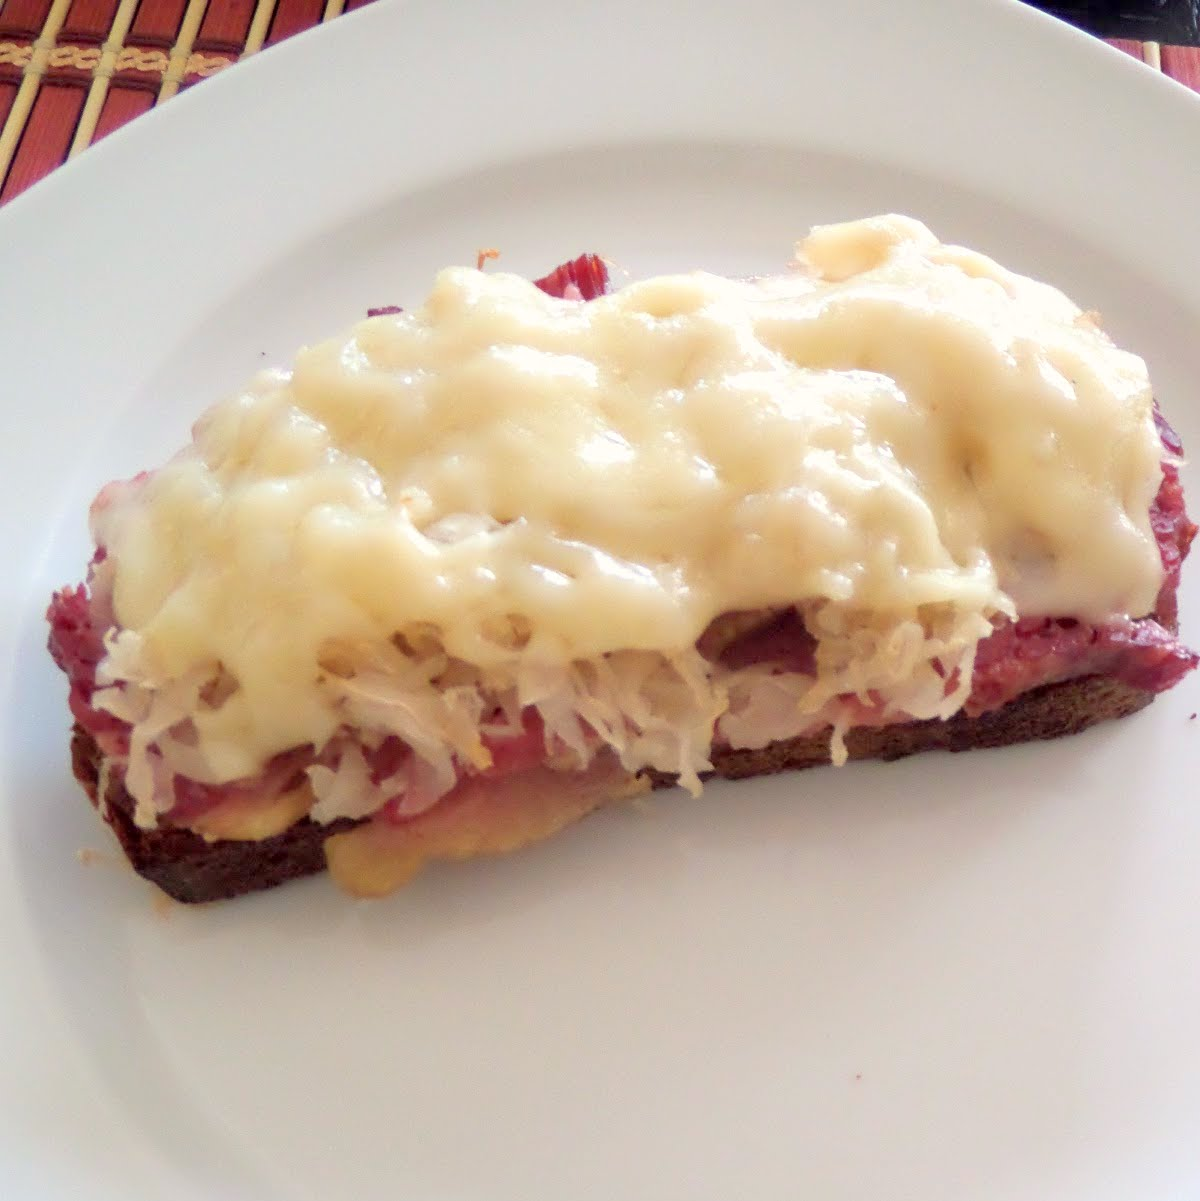 Open Faced Reuben Melts:  All your favorite Reuben ingredients piled on crostini and ready for a quick meal, appetizer, or football snack.